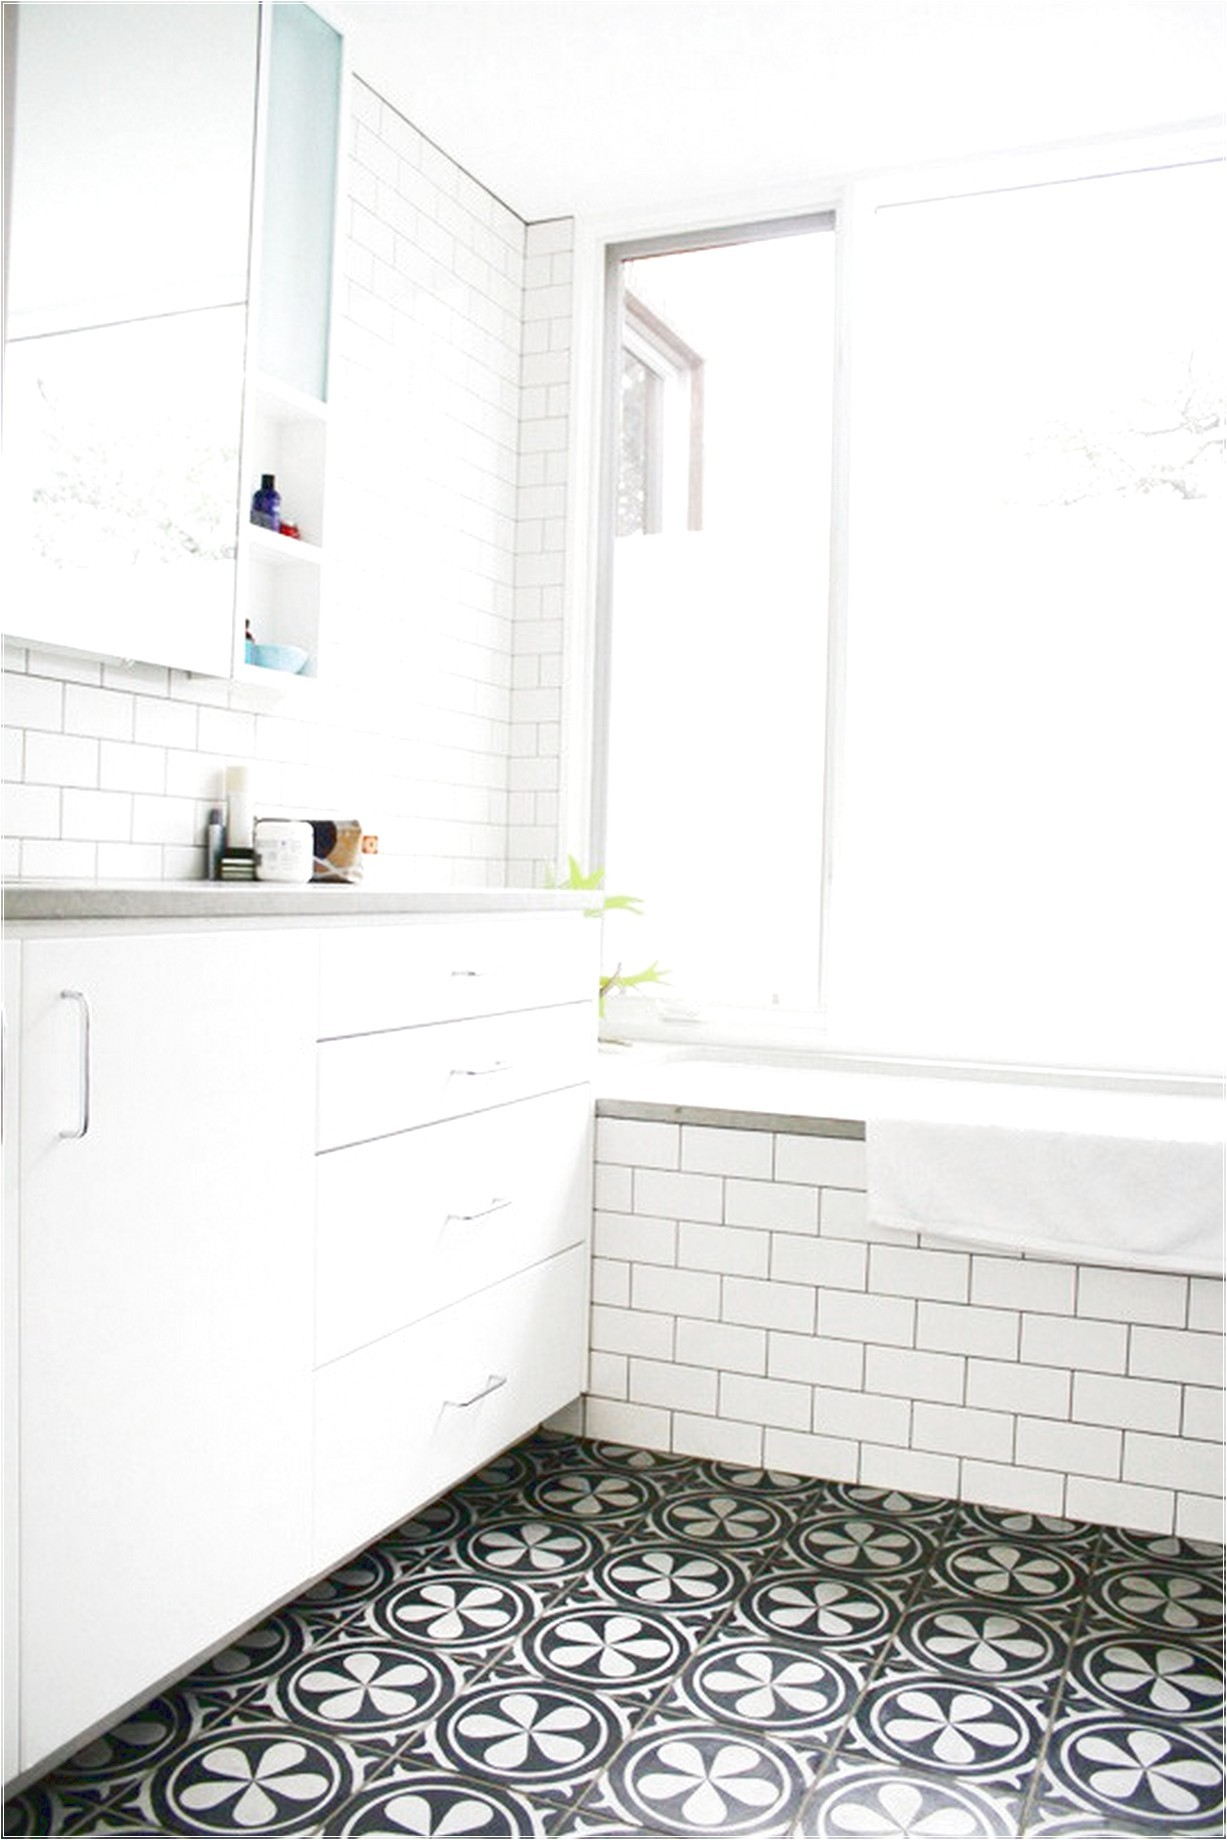 Unique Mosaic Bathroom Floor Tile Picture - Bathroom Design Ideas ...